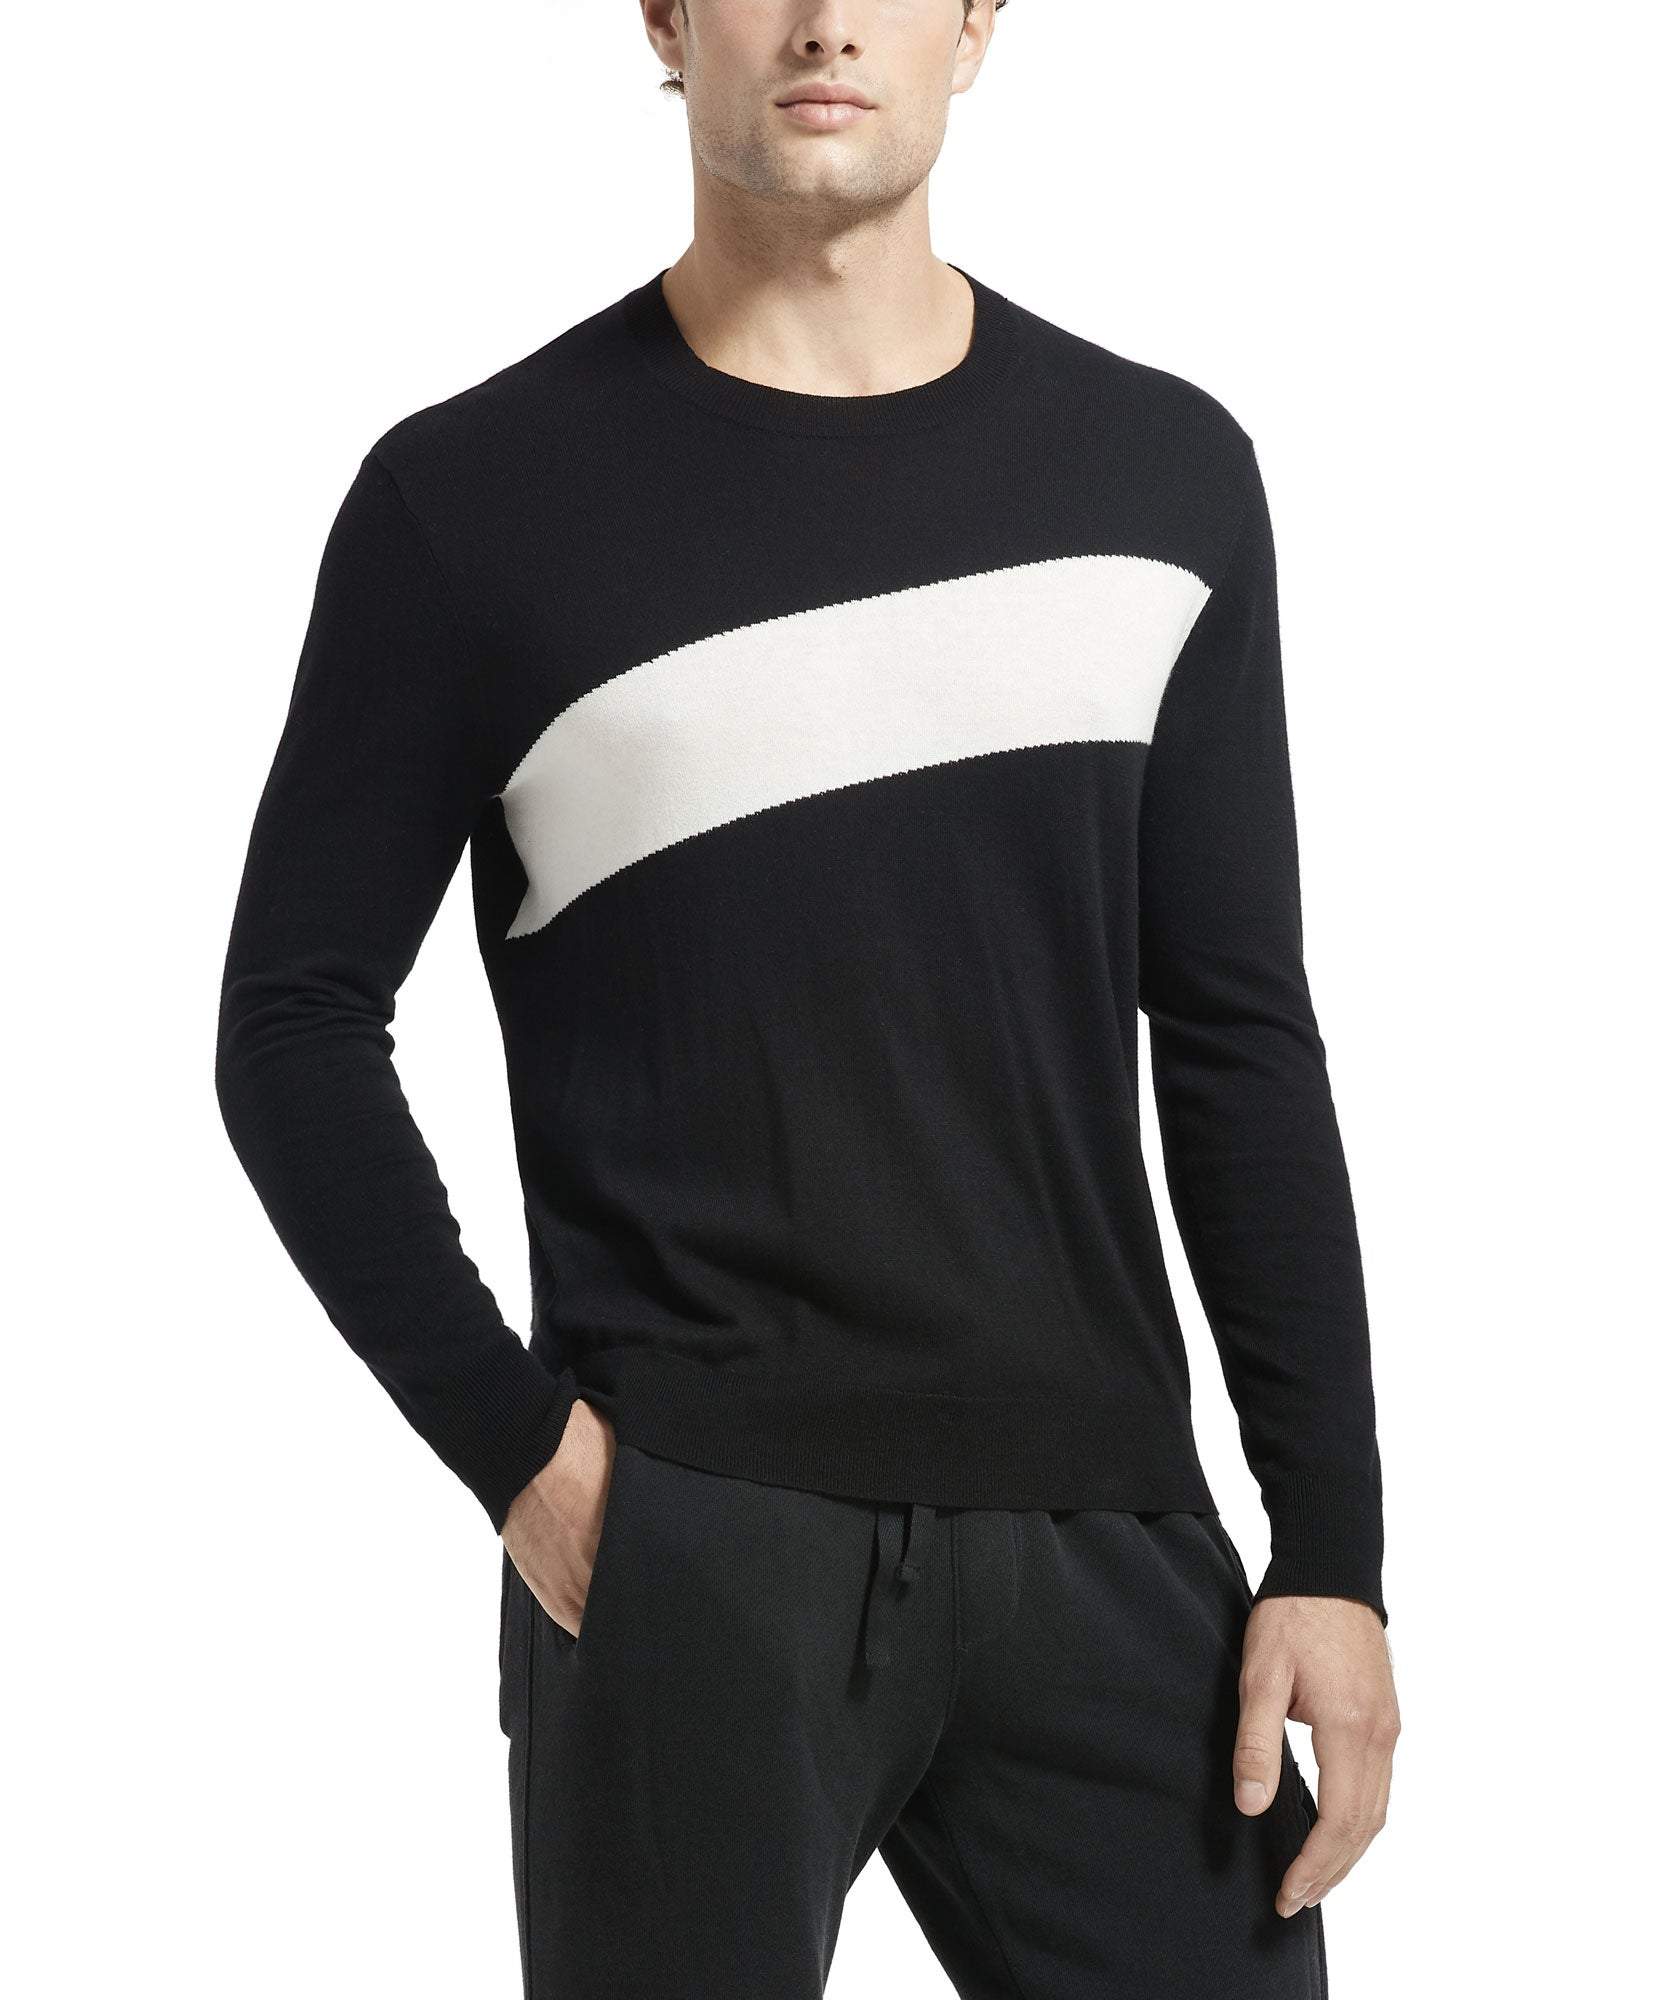 Black Cotton Cashmere Intarsia Stripe Crew Neck Sweater - Men's Luxe Sweater by ATM Anthony Thomas Melillo